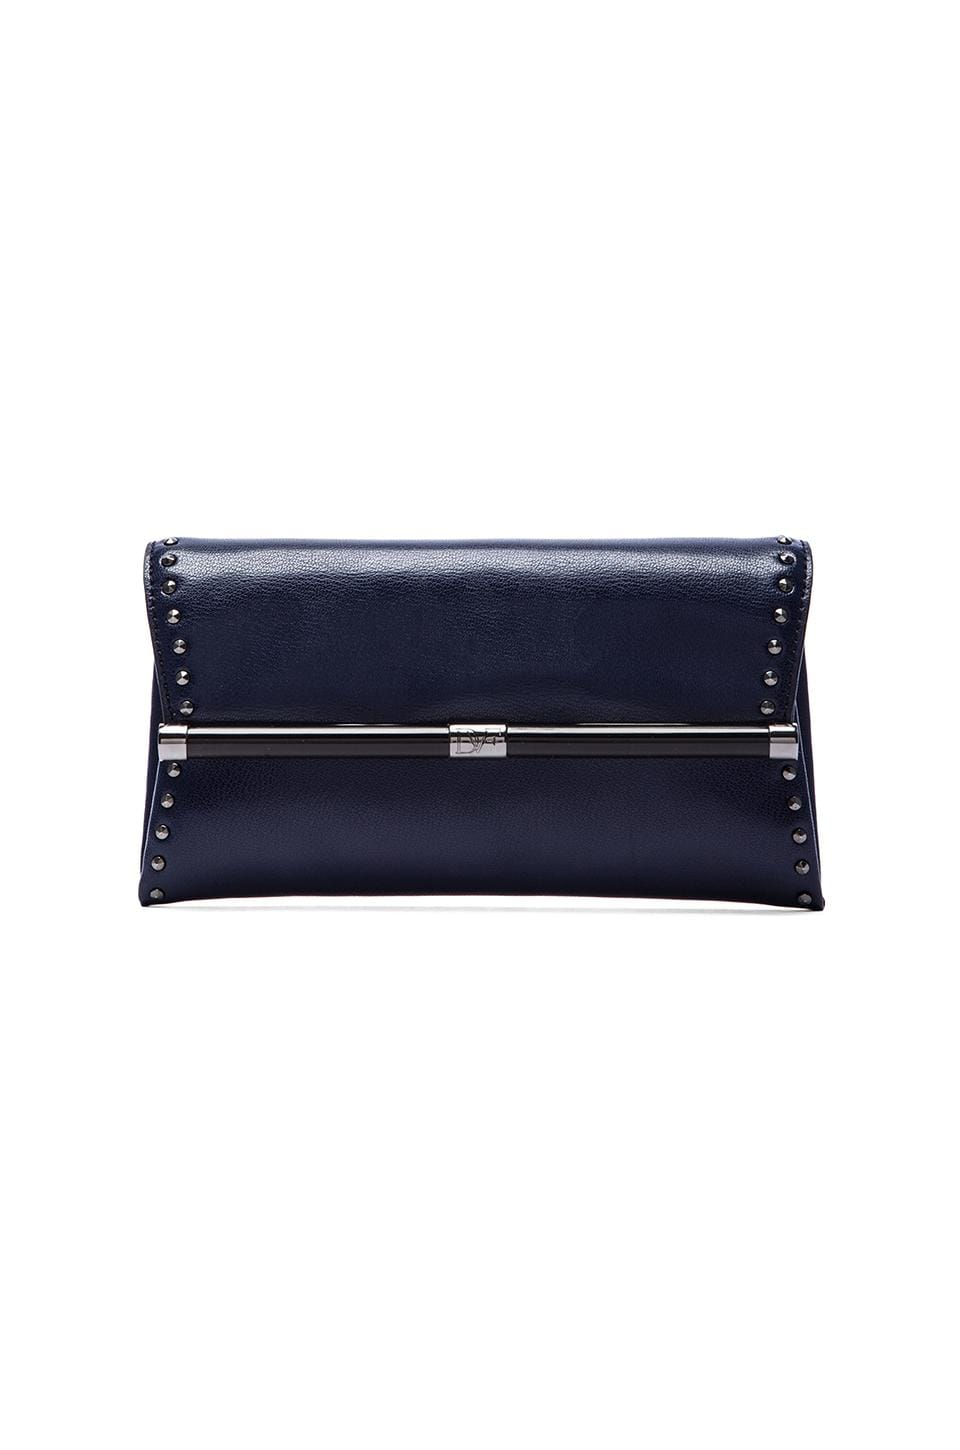 Diane von Furstenberg Envelope Clutch in Dark Night